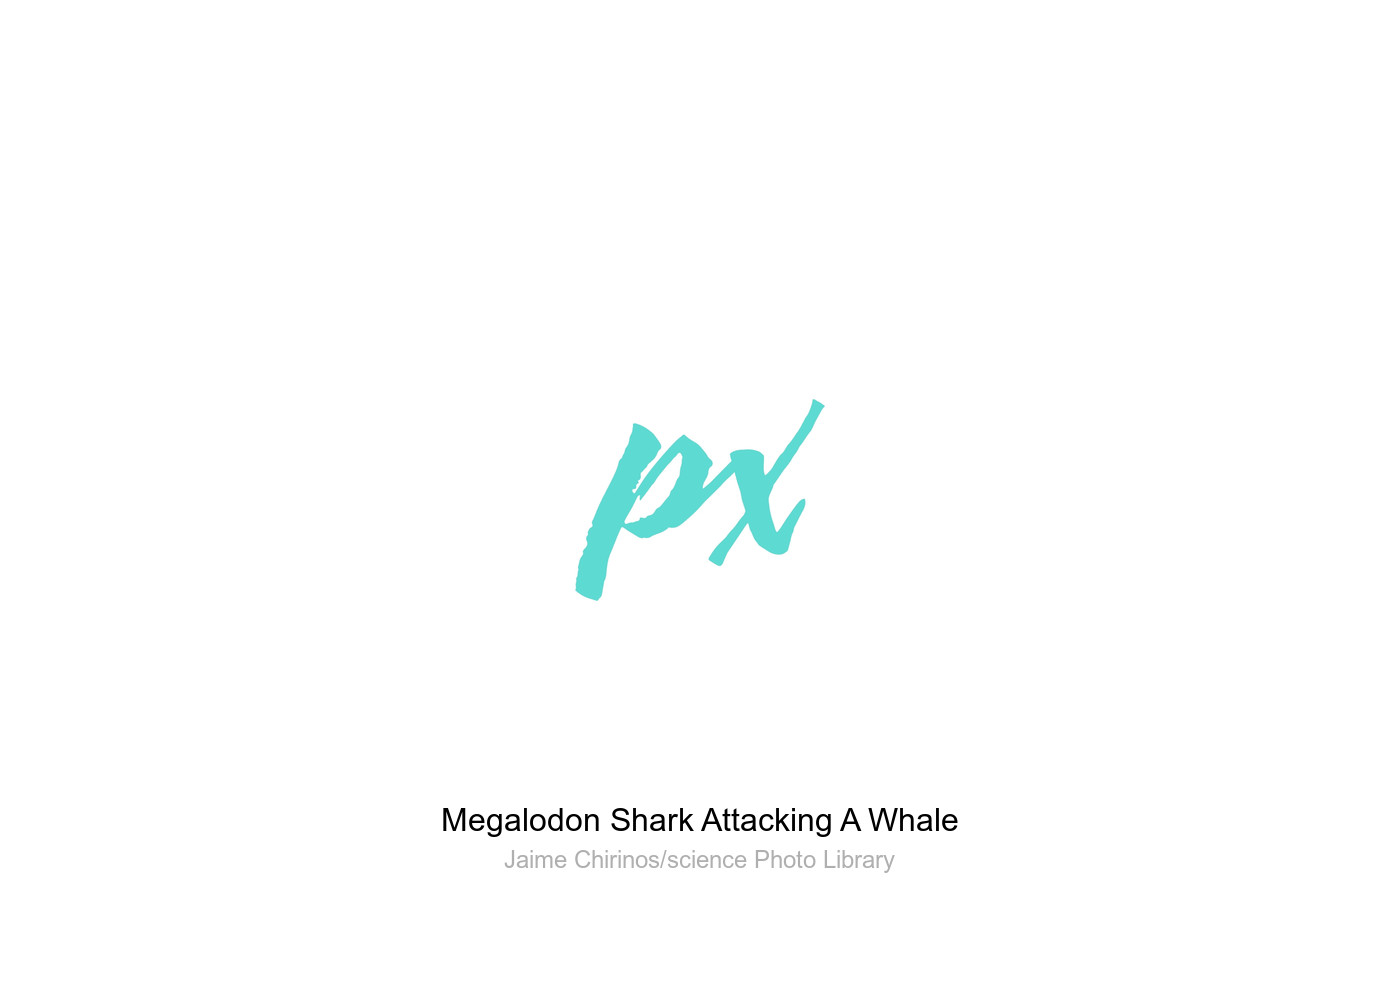 Megalodon Attack Whale